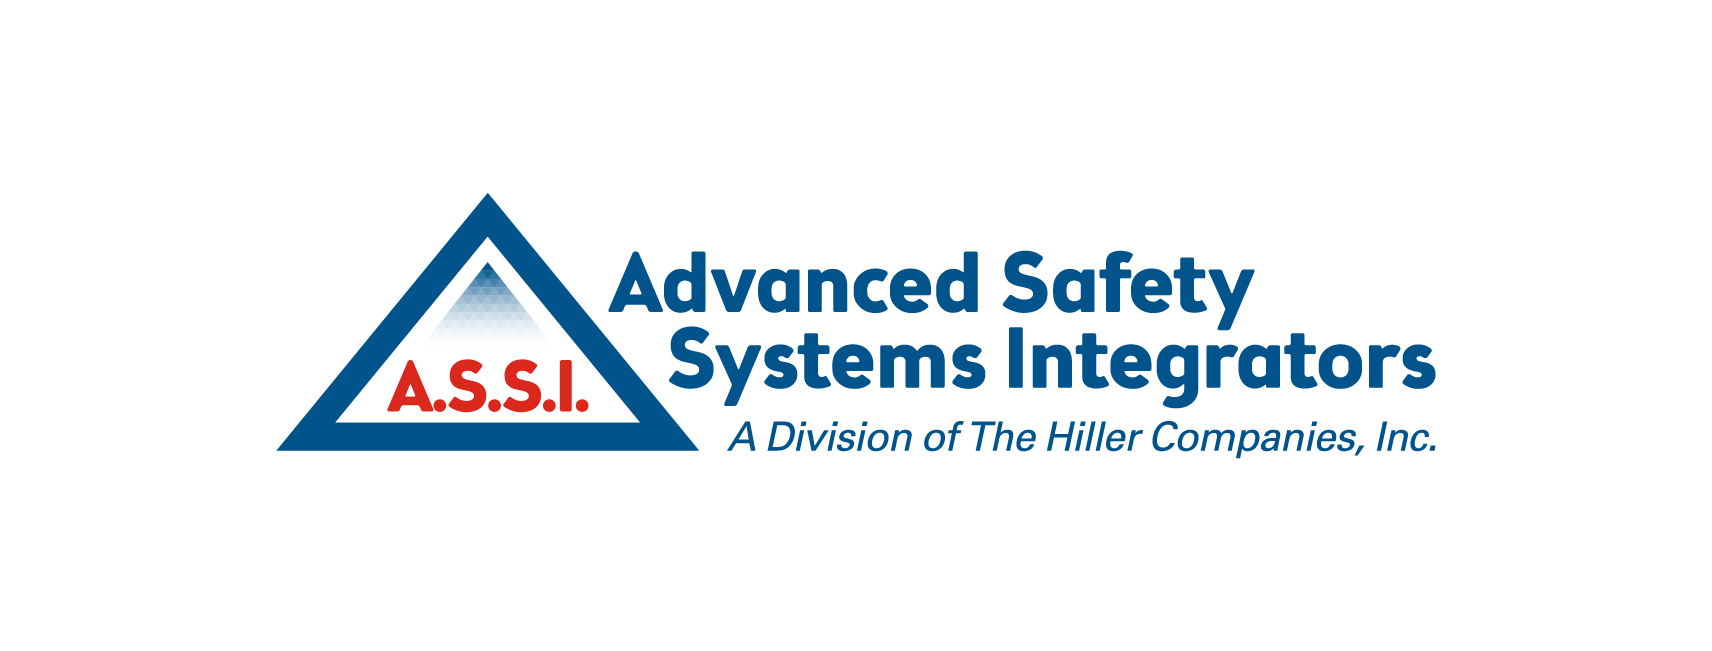 The Hiller Companies purchases Advanced Safety Systems Integrators serving the New England region of Massachusetts.